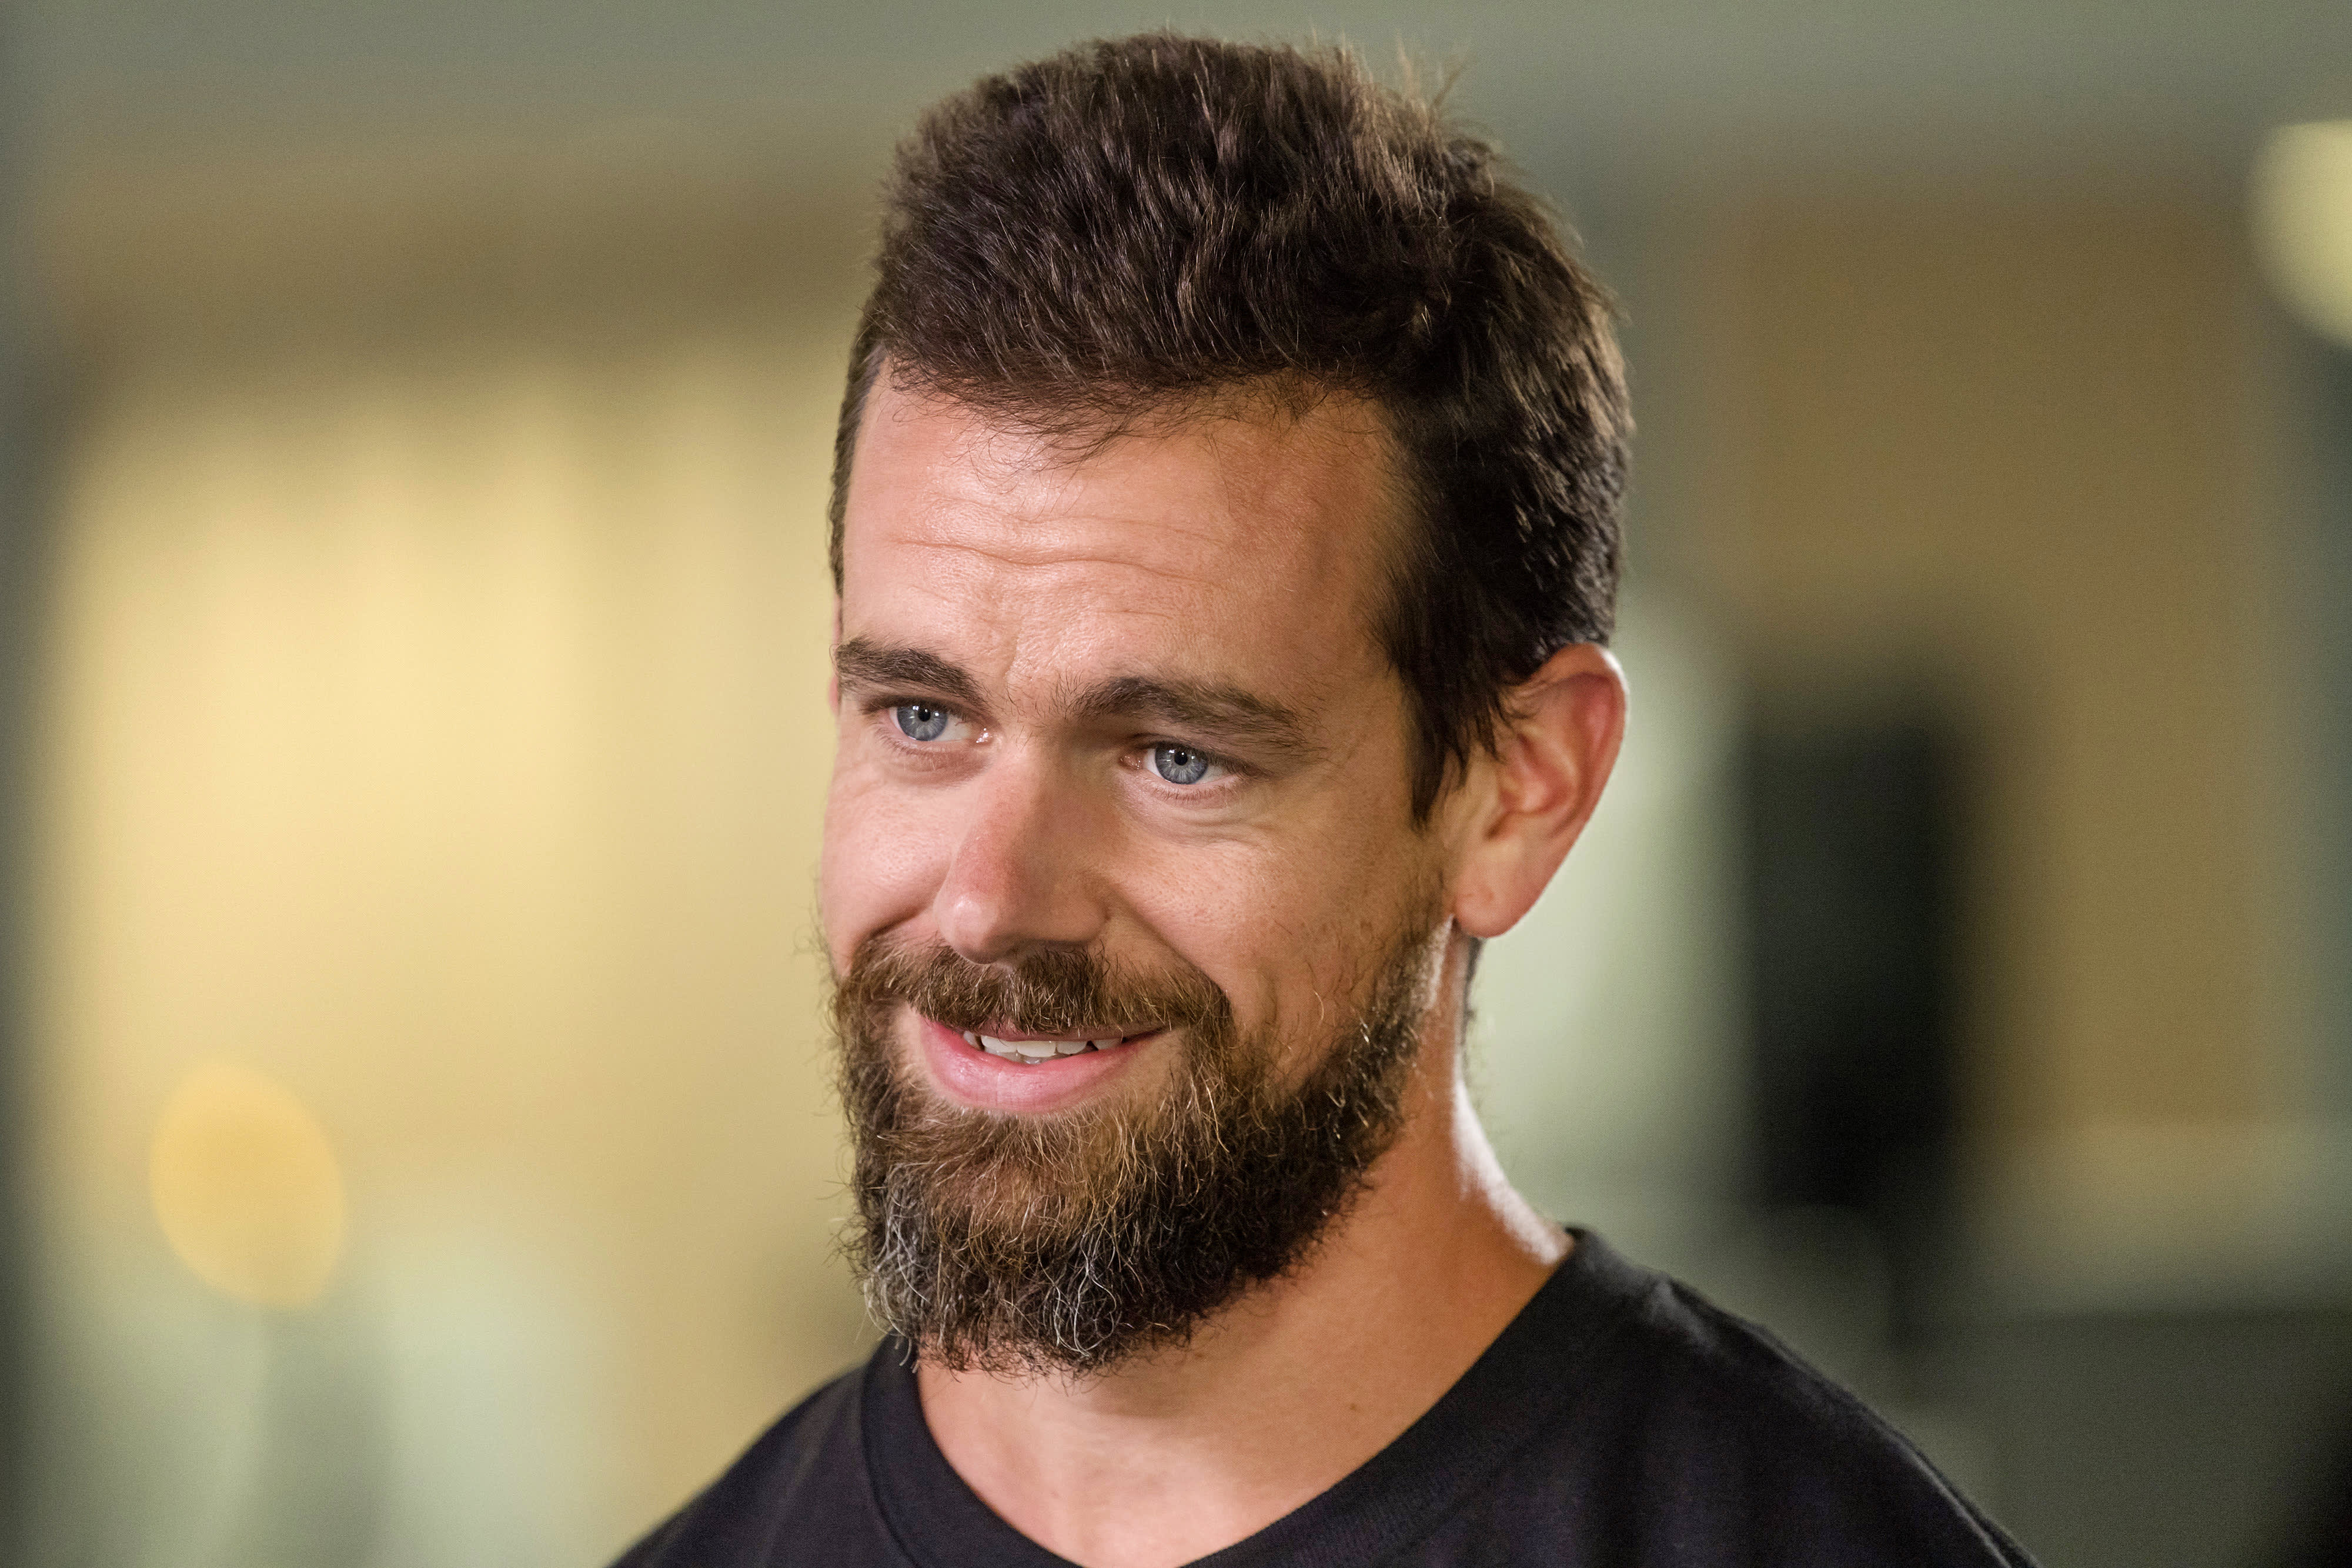 Twitter And Square Ceo Jack Dorsey On His Personal Wellness Habits